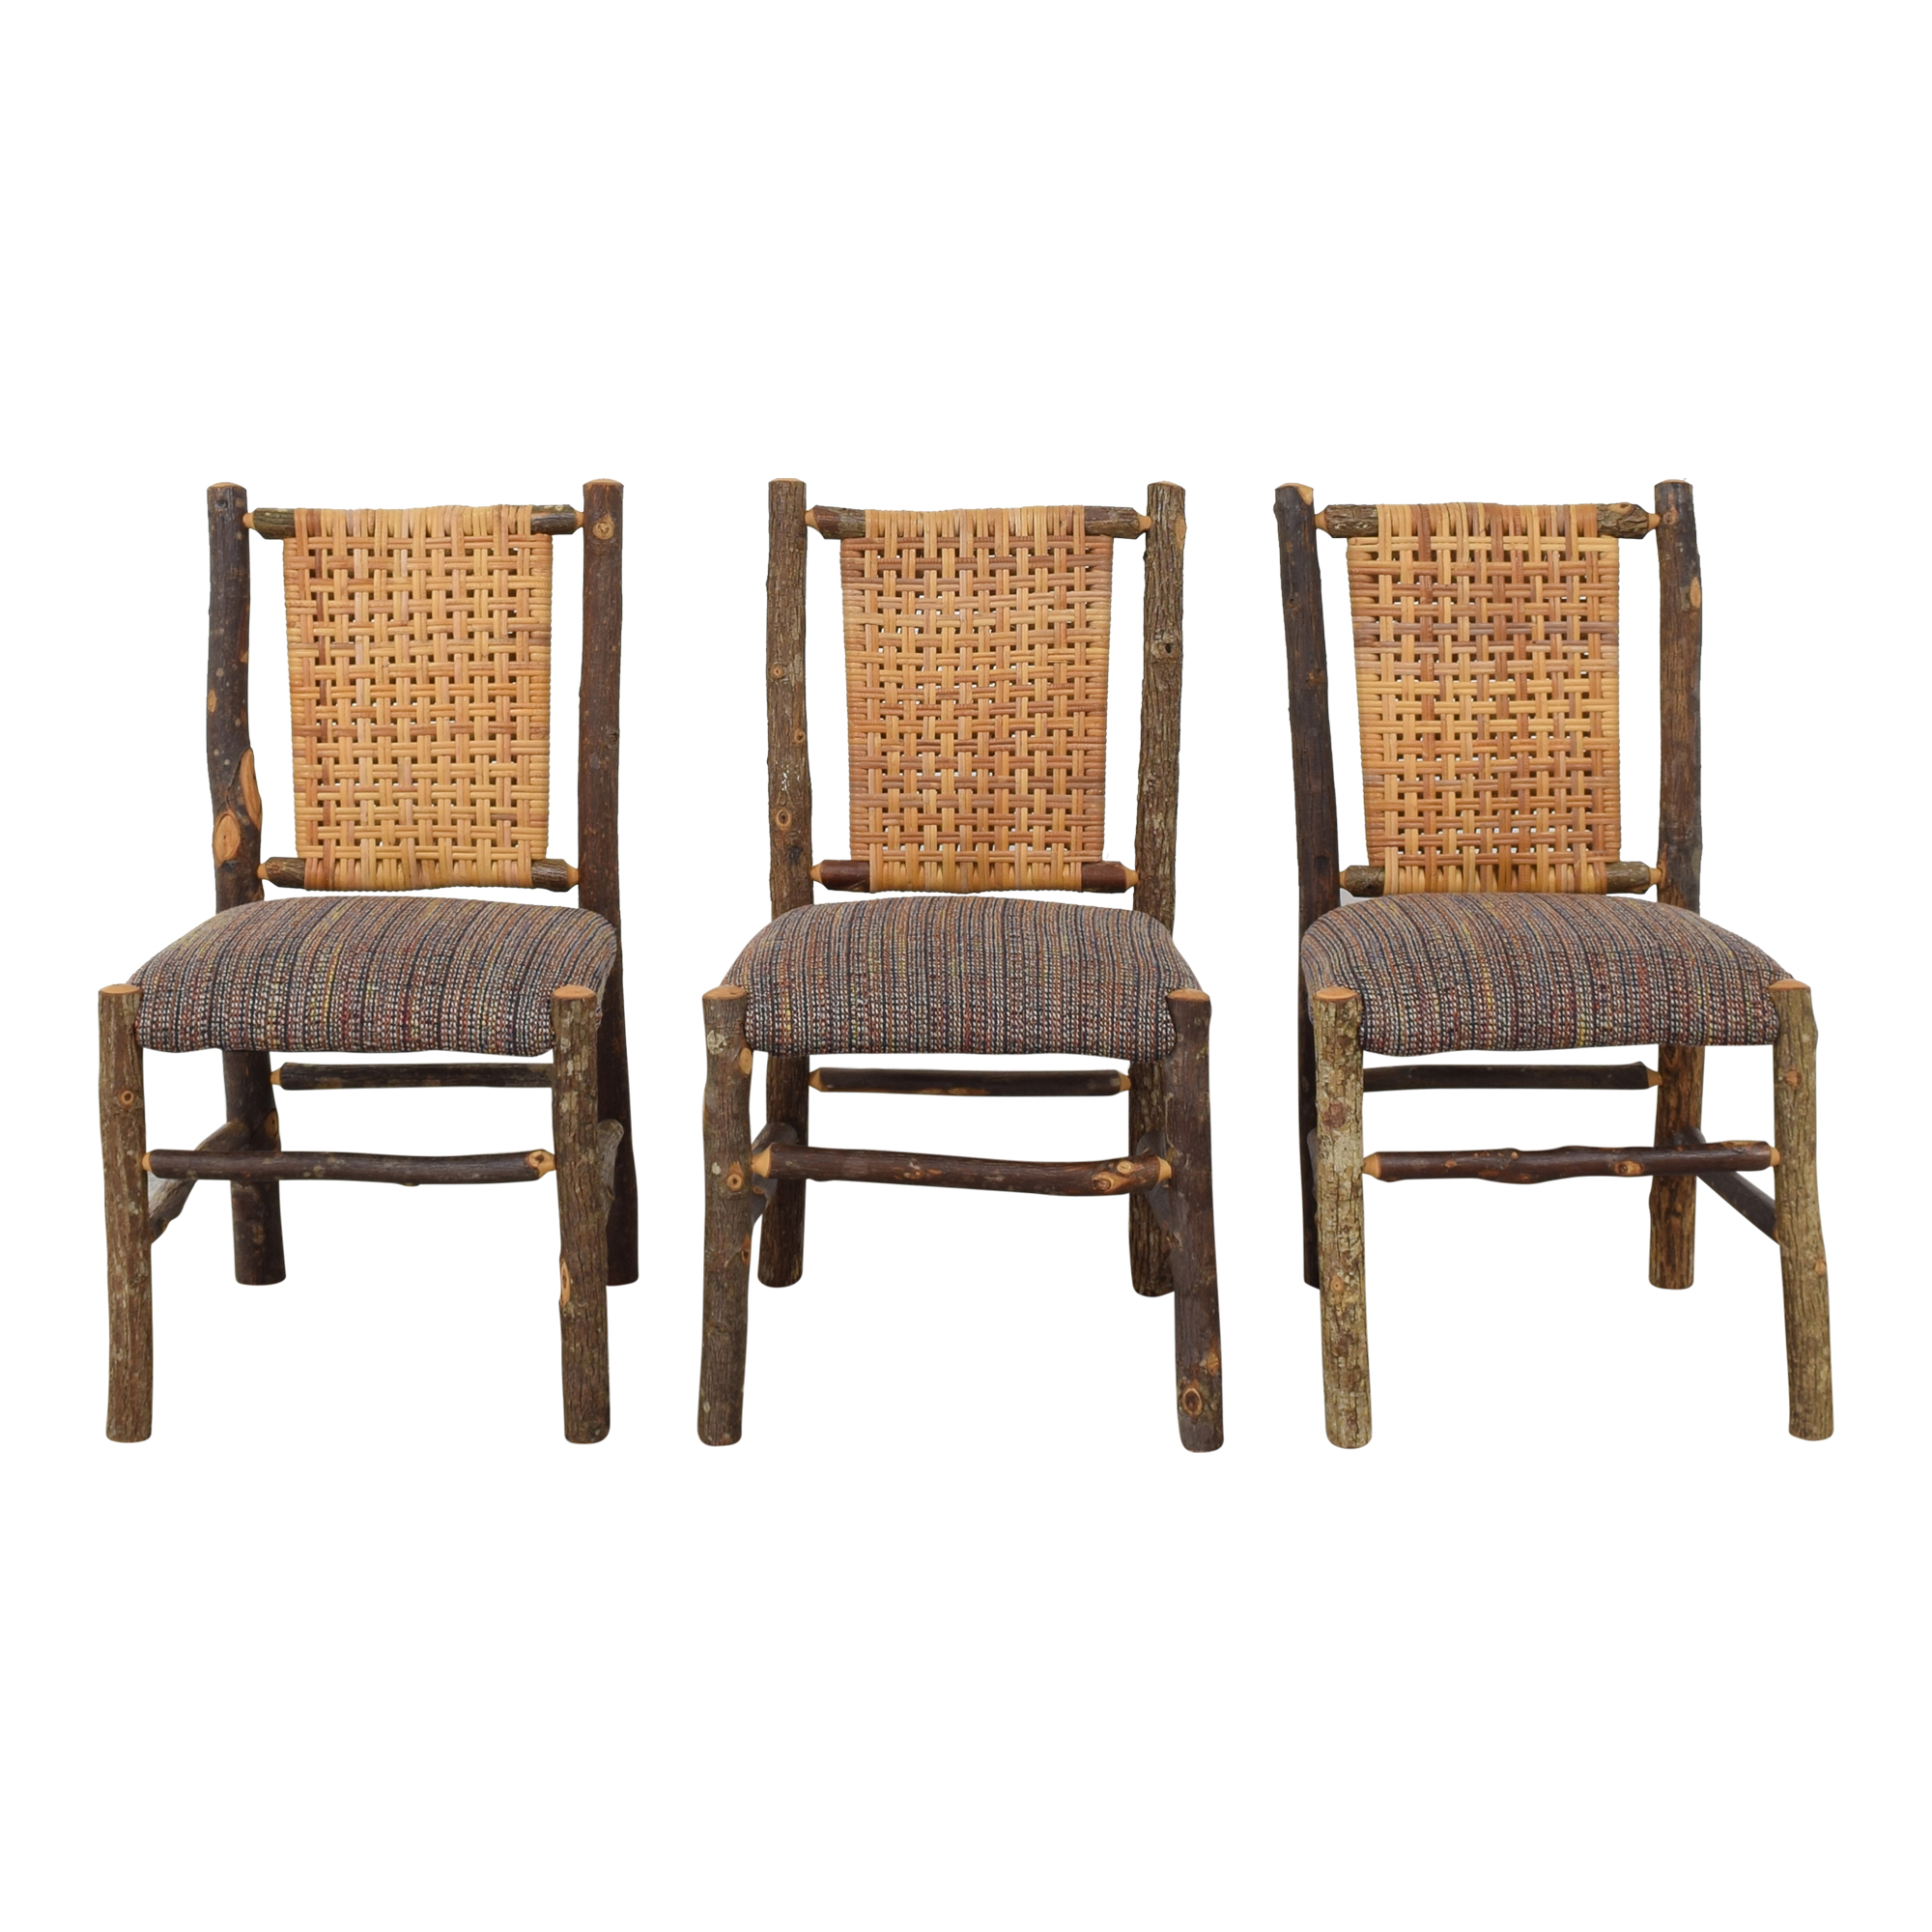 Custom Rustic Dining Side Chairs for sale